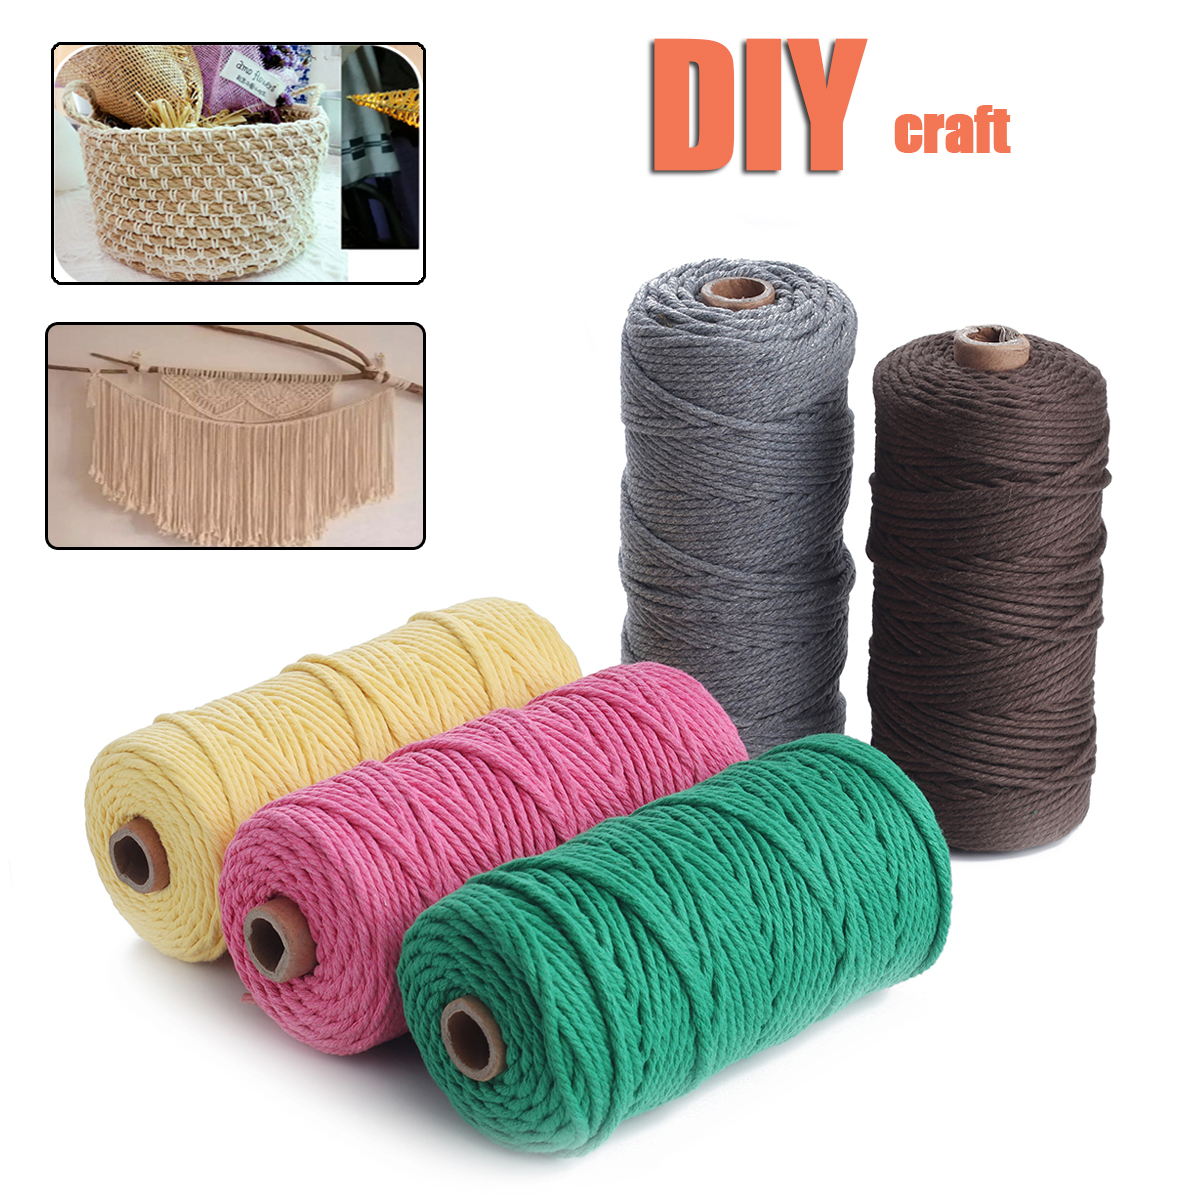 5 Colors 3mm 100m Cotton Twisted Cord Rope Macrame String DIY Braided Wire Craft Natural Color